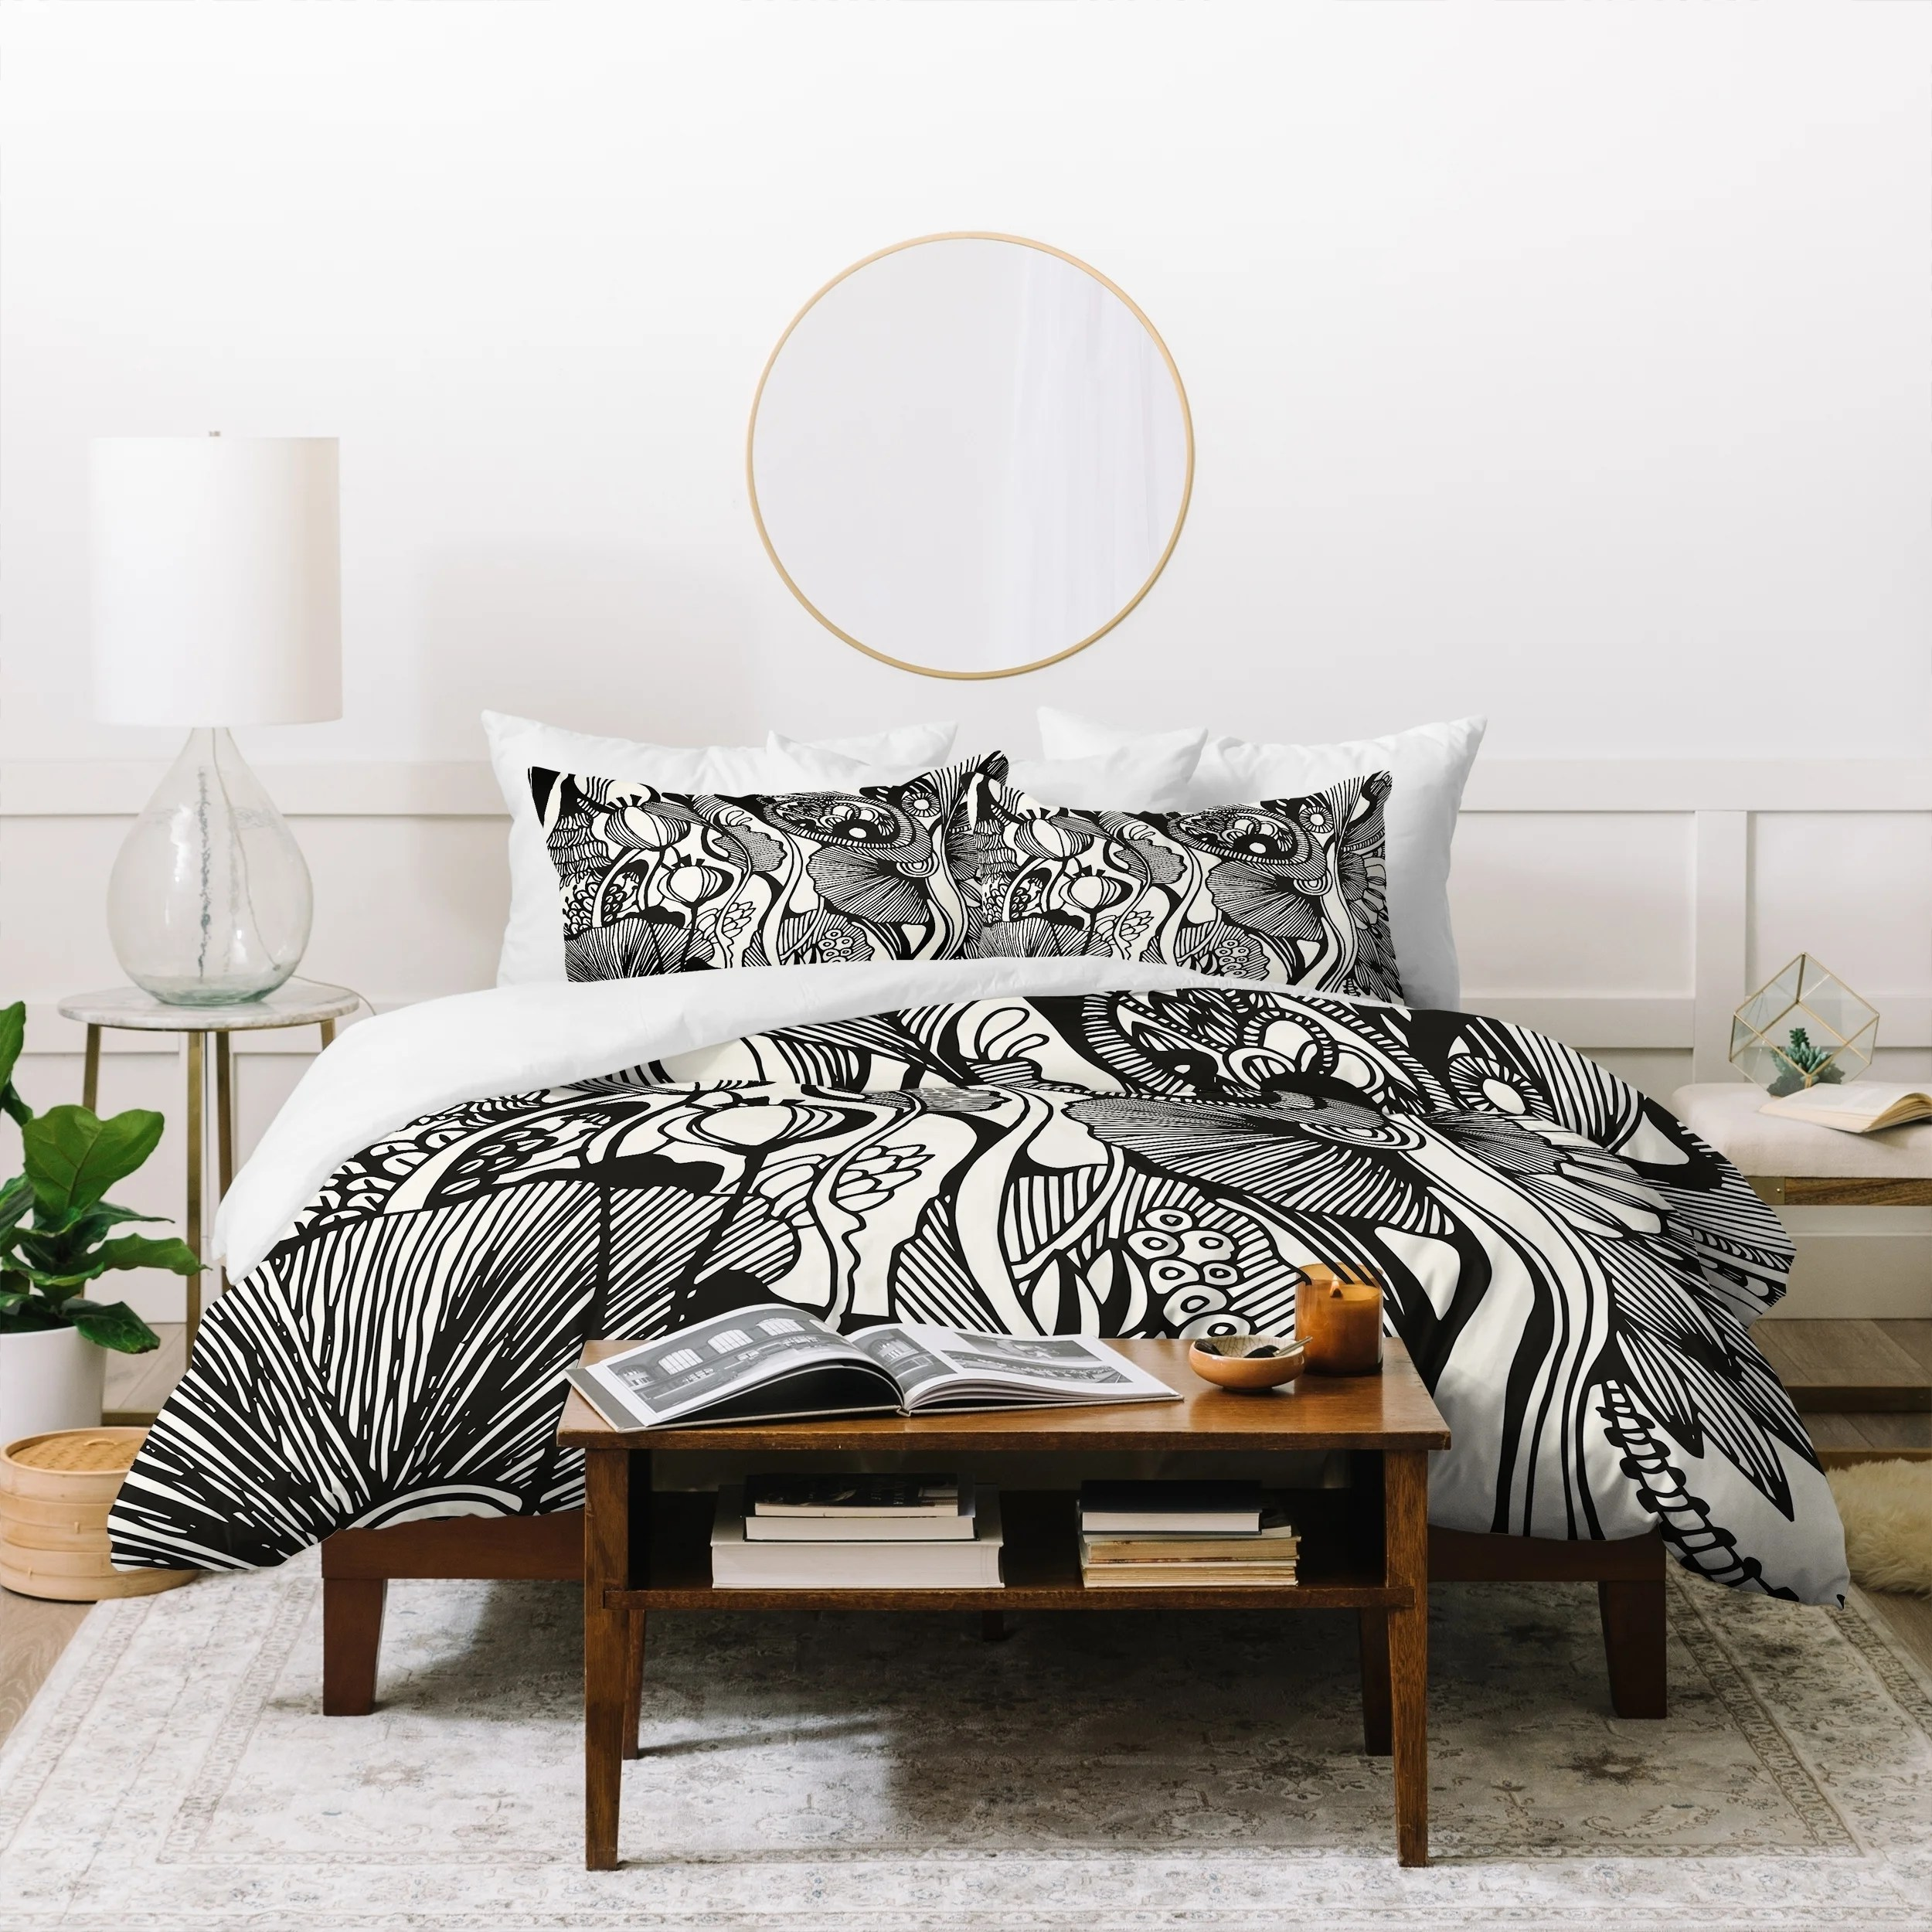 Shop Deny Designs Black And White Botanical Duvet Cover Set 3 Piece Set On Sale Overstock 21453981